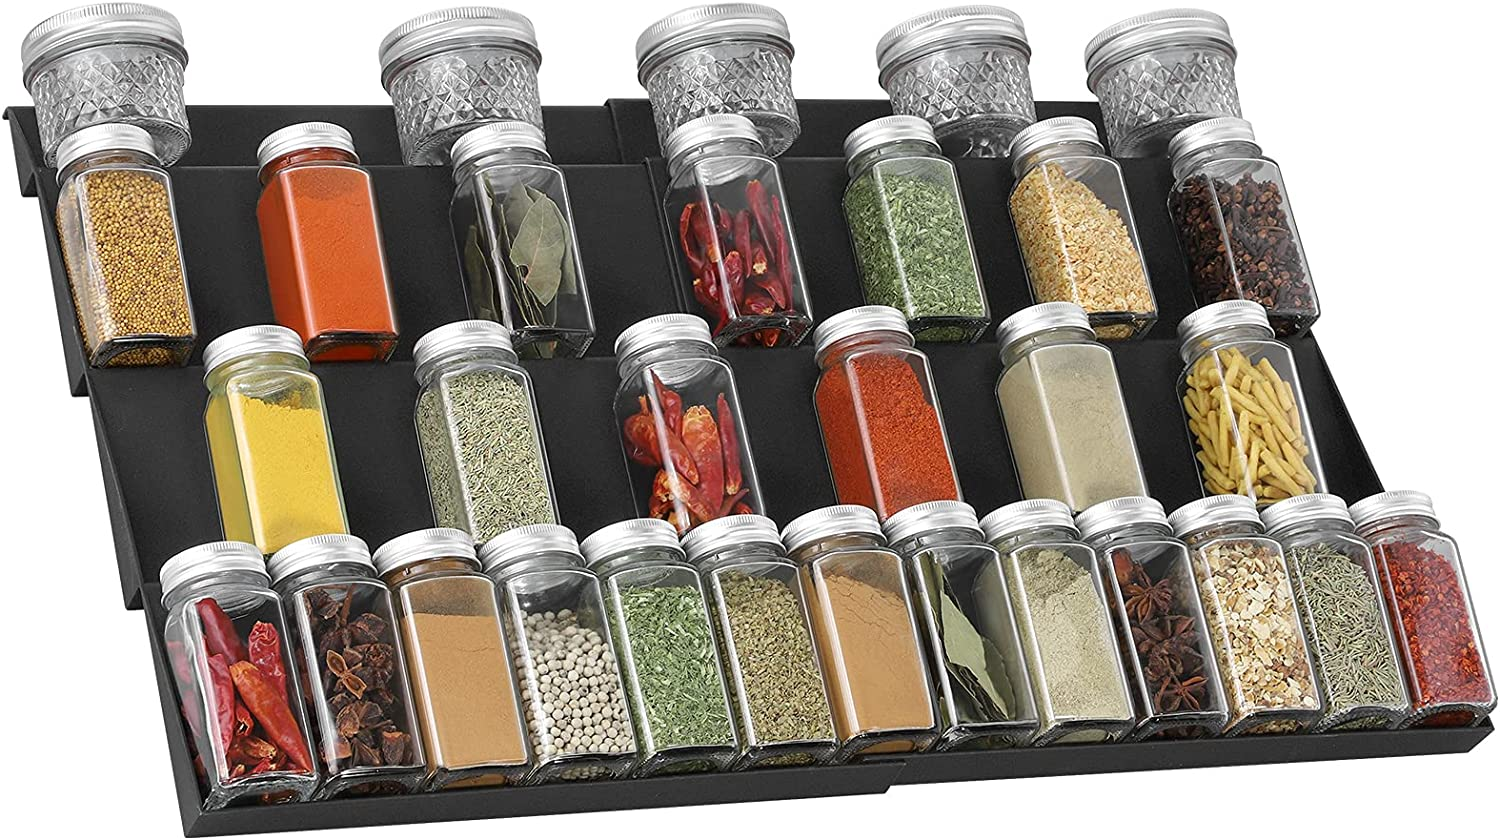 QIZENME Spice Rack Plastic Drawer Kitchen Ranking TOP19 D Organizer for cheap